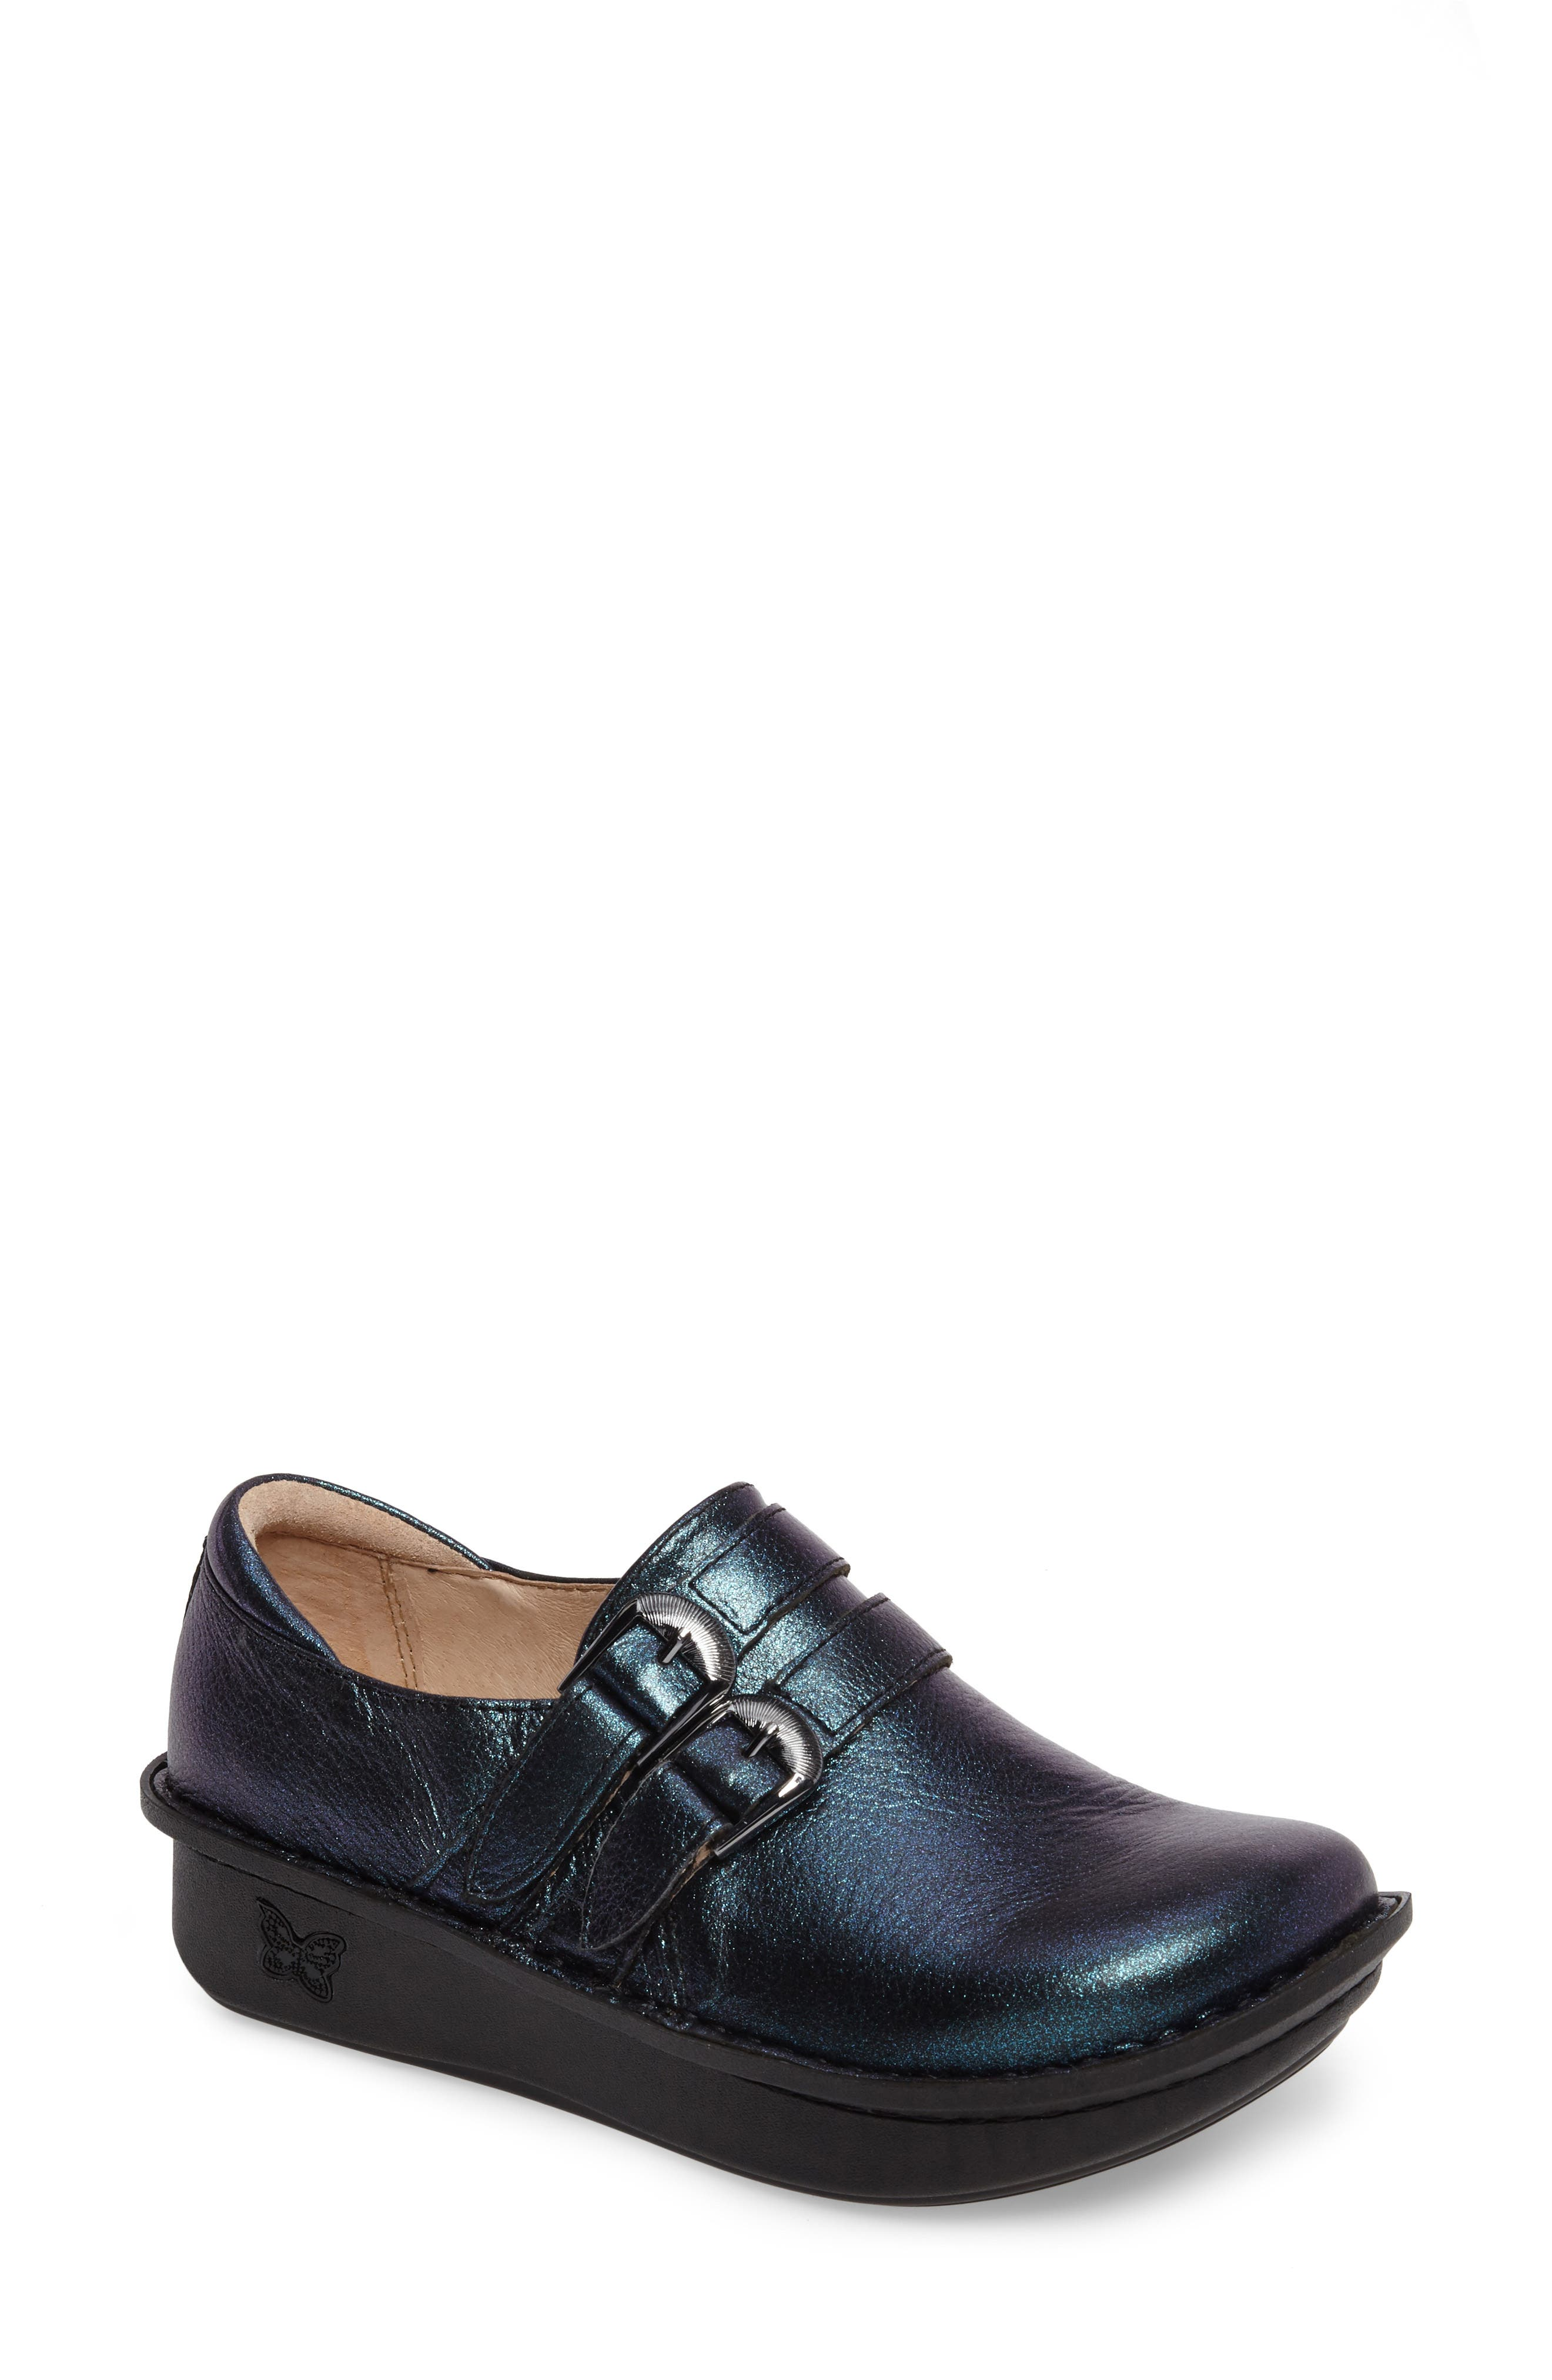 'Alli' Loafer,                             Main thumbnail 1, color,                             Starlit Leather